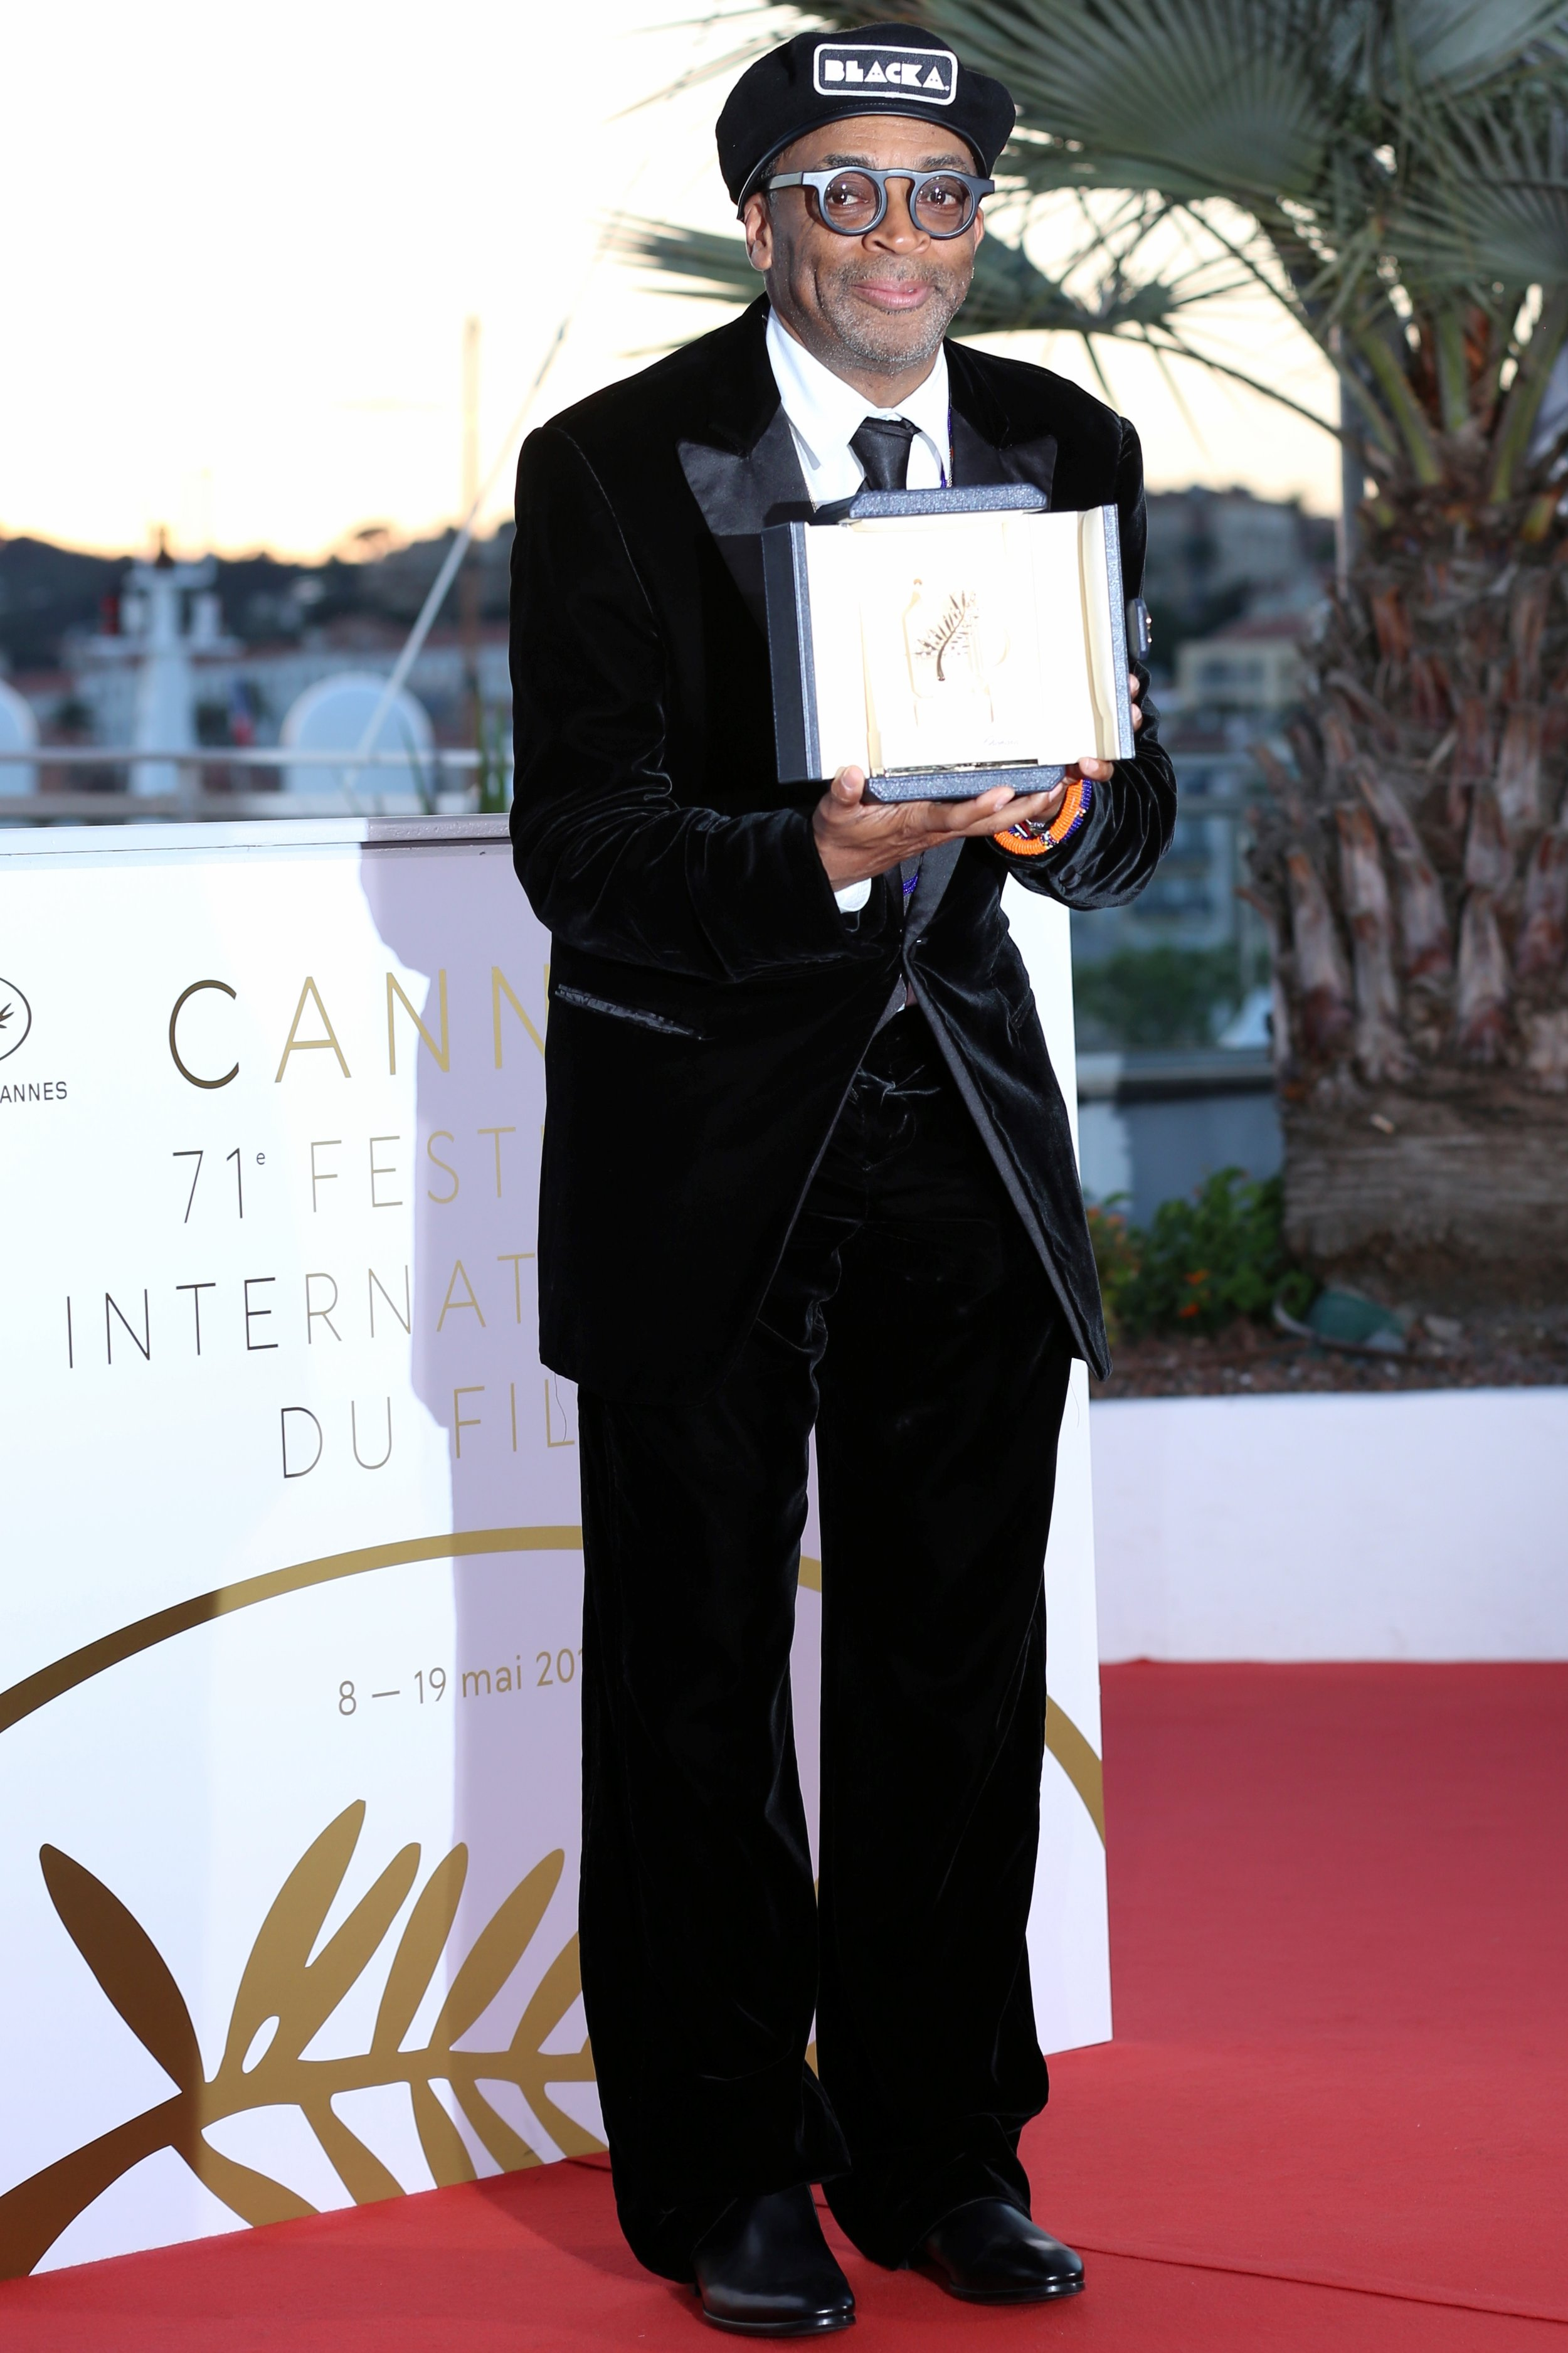 Cannes18_AwardsPhotocall_SpikeLee.jpg